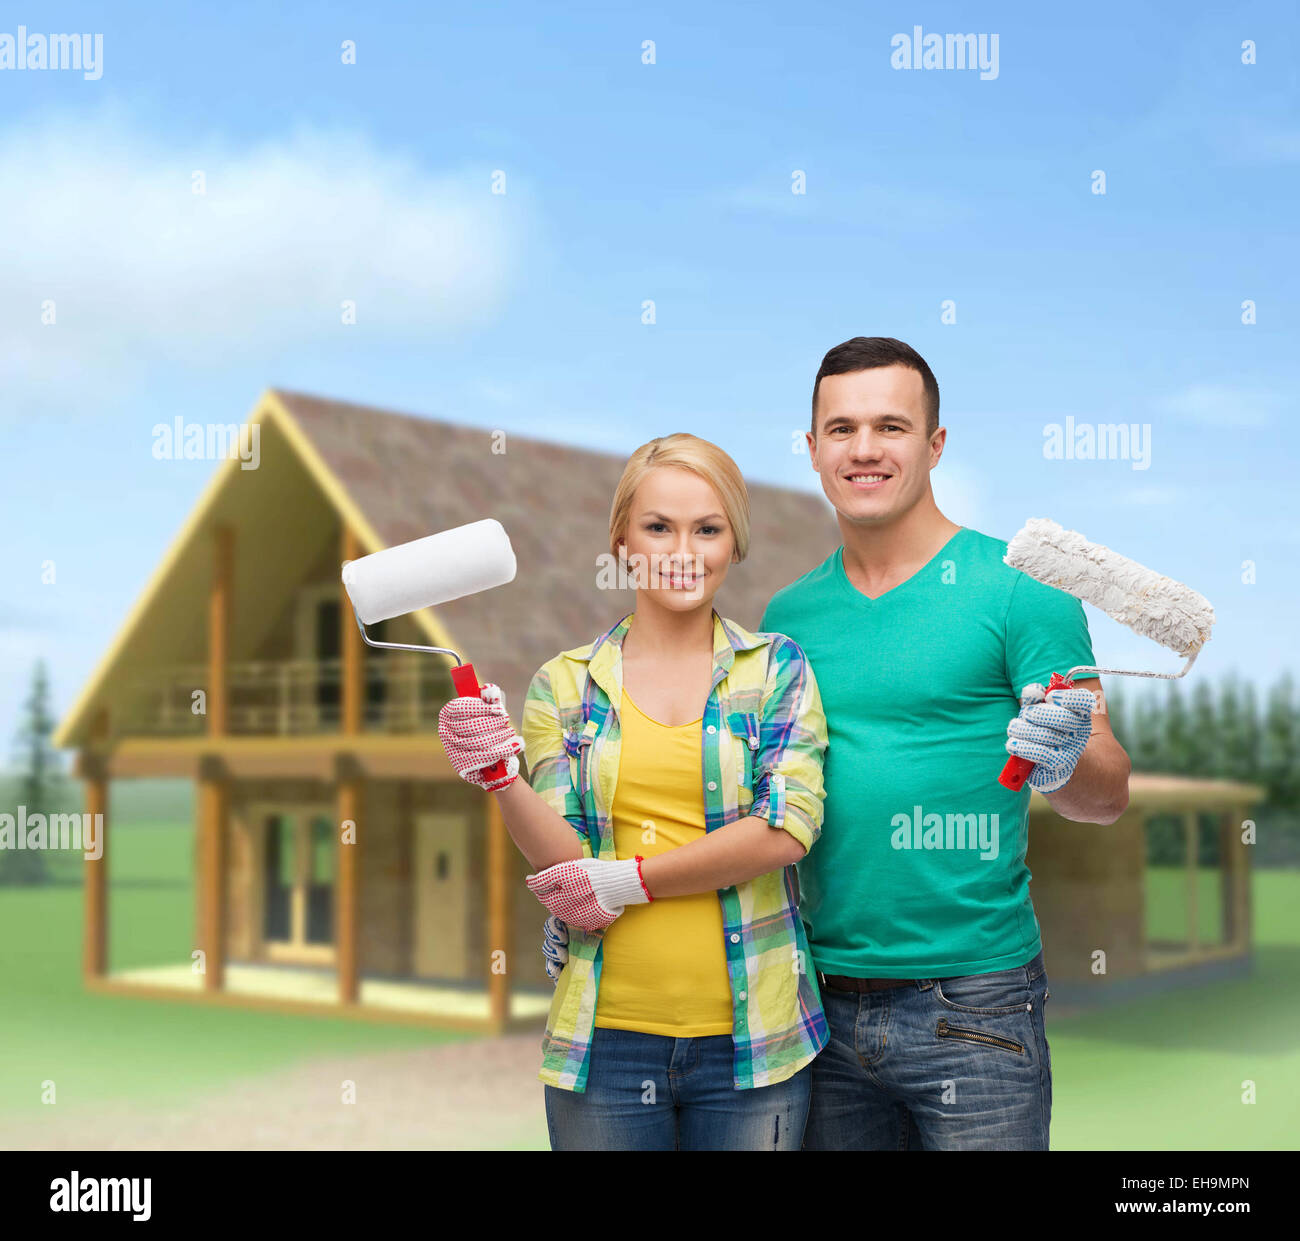 smiling couple in gloves with paint rollers - Stock Image